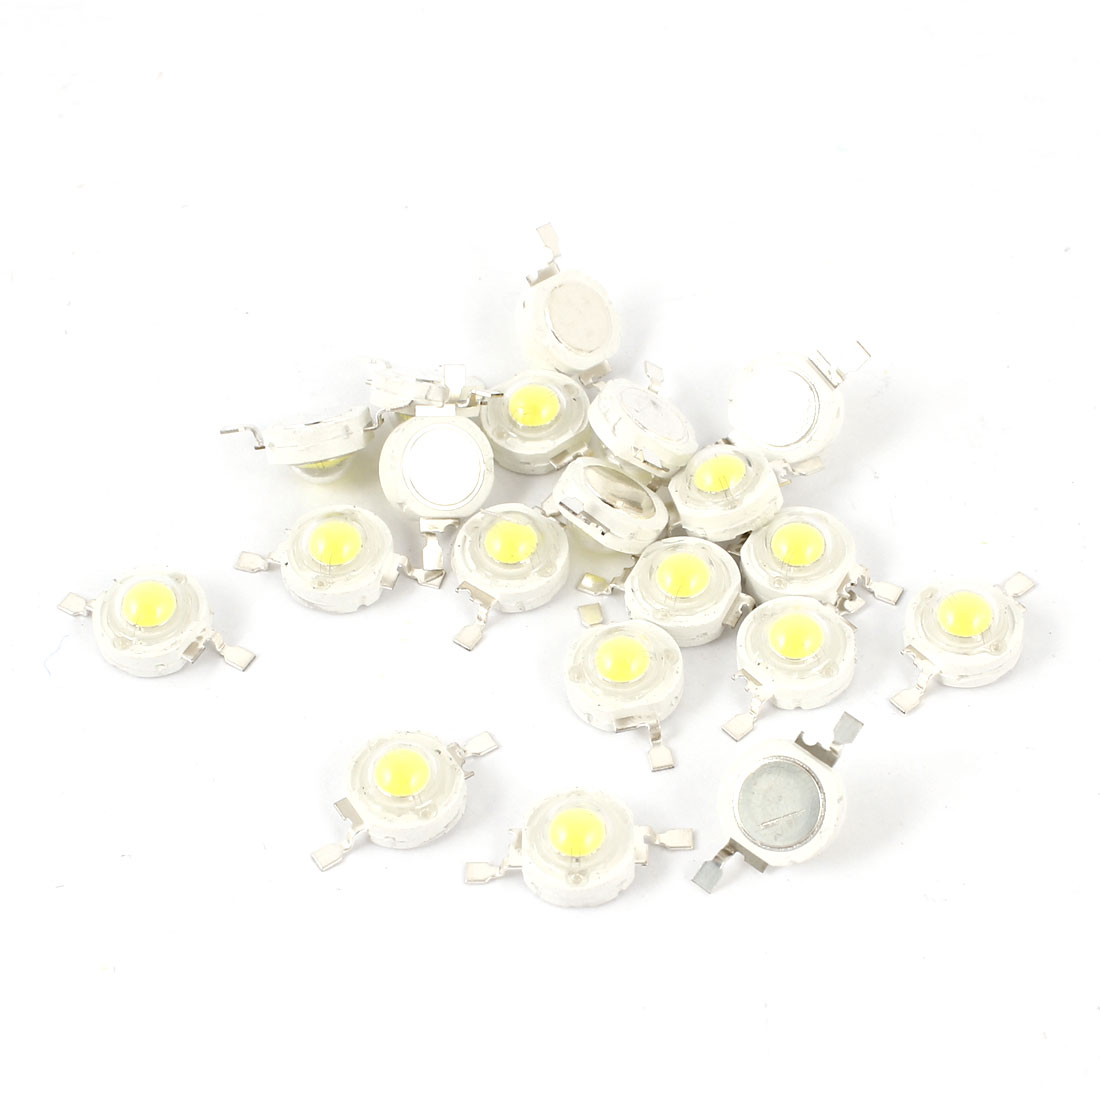 20pcs 1W Power 100-110LM 2 Terminal White Light LED Lamp Diodes Beads